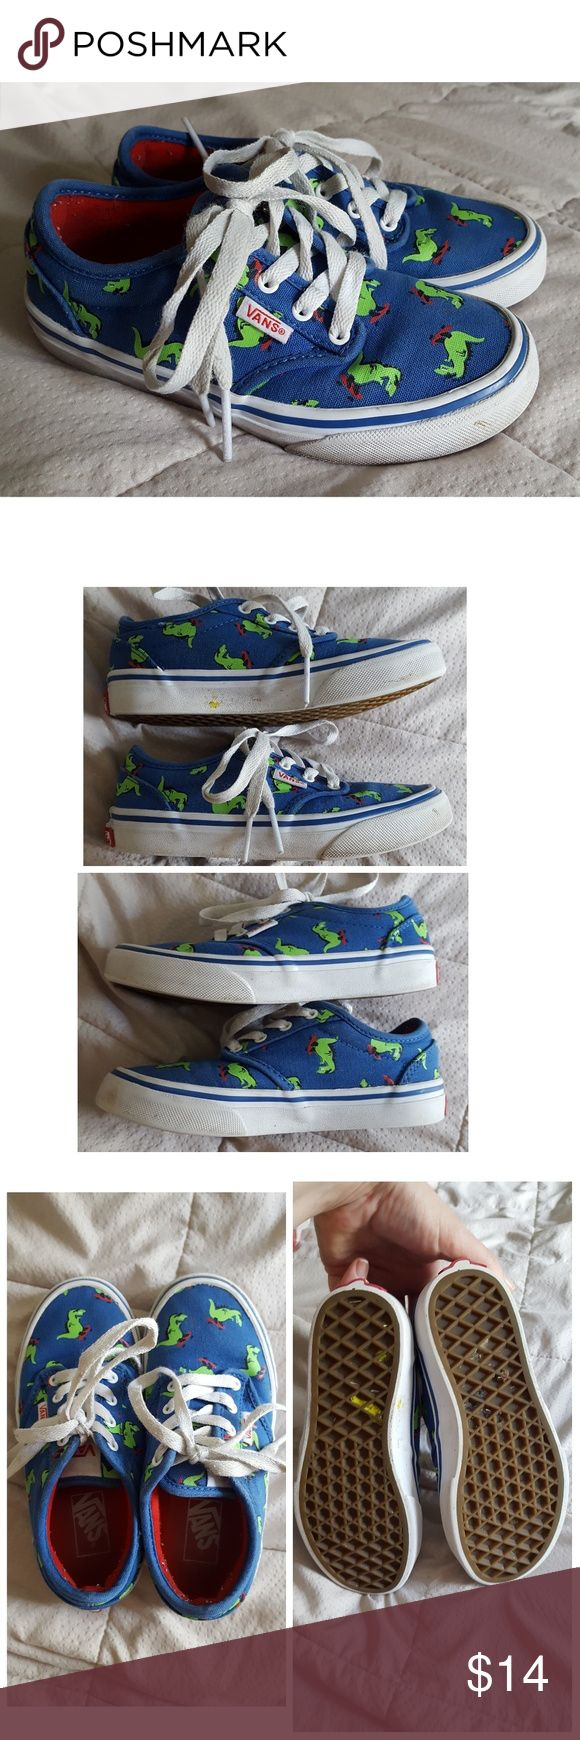 Little kids VANS skate shoe sz 12.5 Y These are super cute and in great condition! Just wipe the white rubber part and they'll look almost new. Only worn about 3 times before my little guy grew out of them. Appropriate for boy or girl Vans Shoes